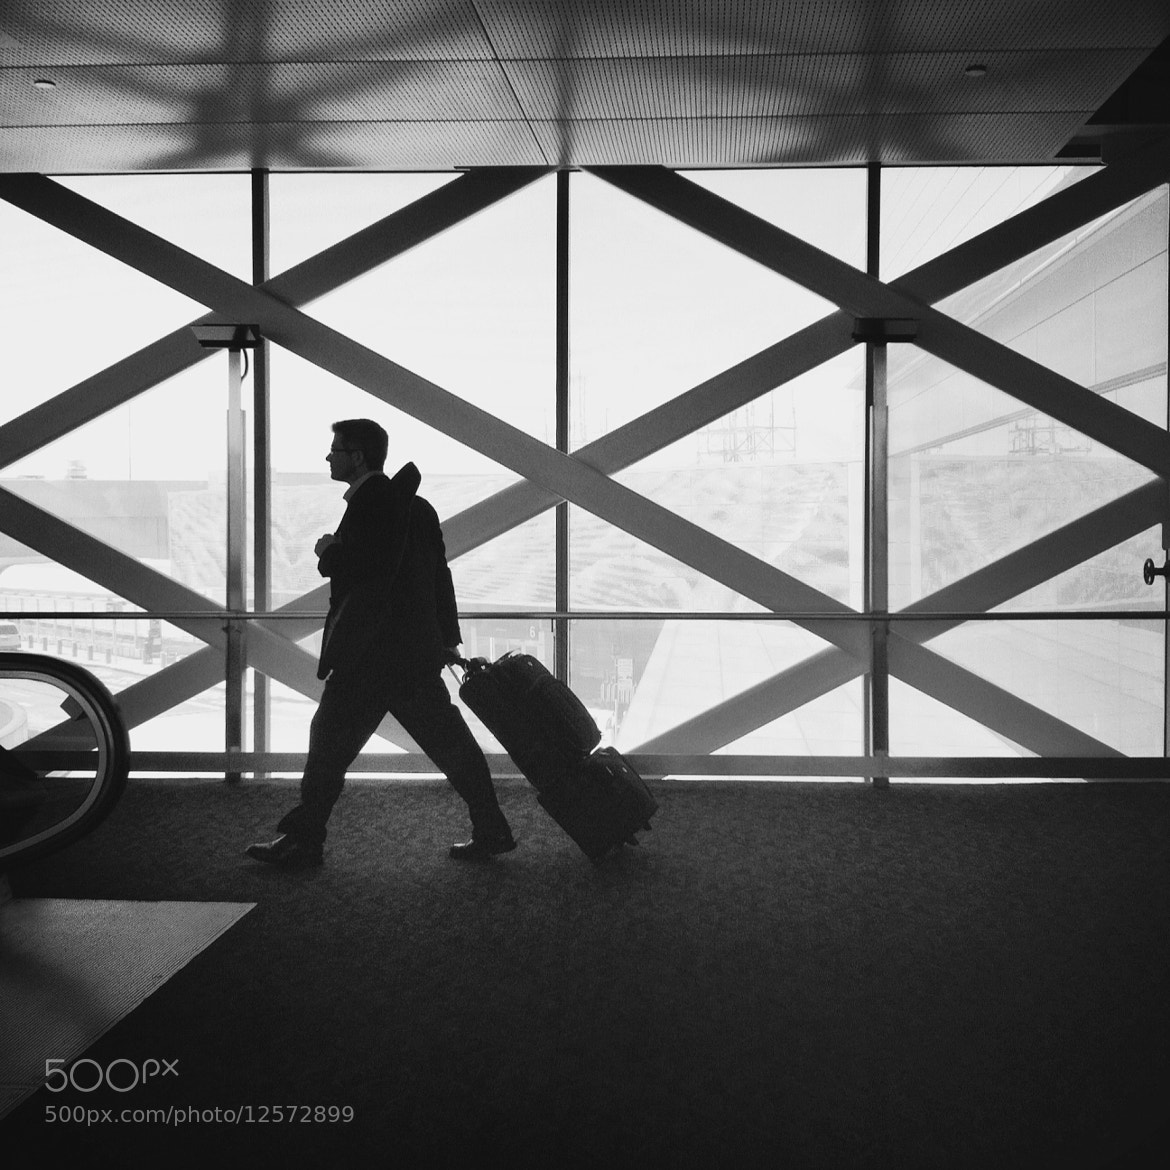 Photograph a Traveler's Life by fixelzero _ on 500px